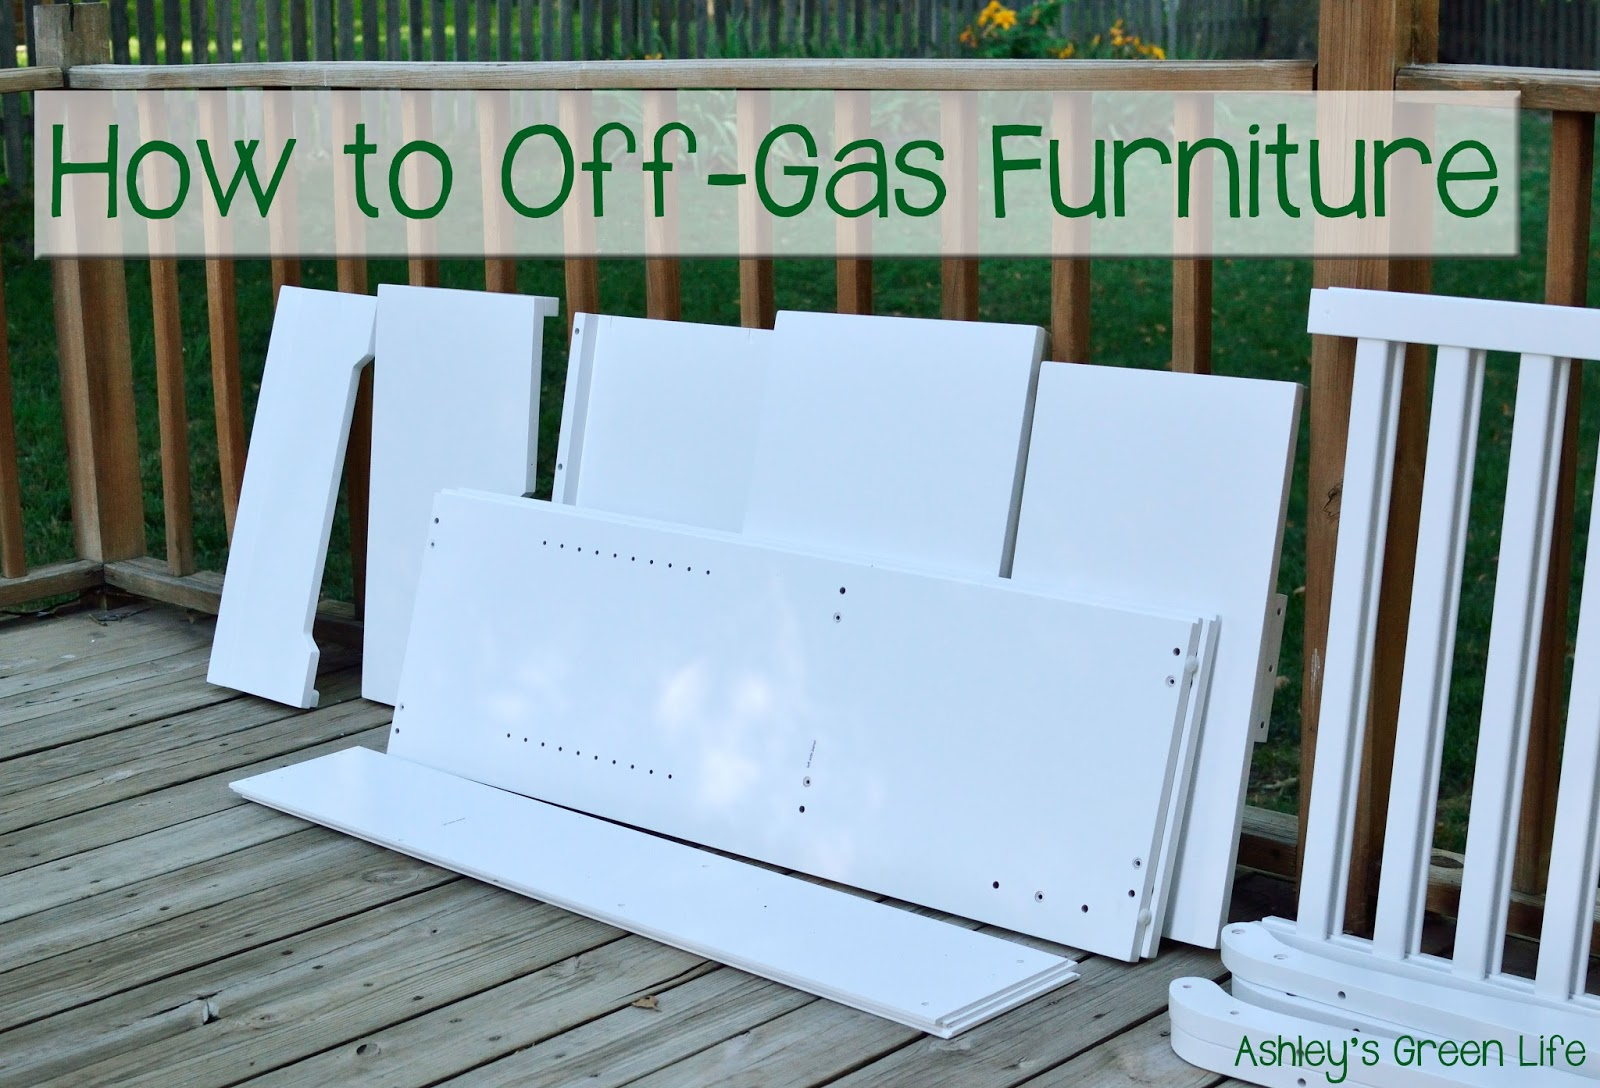 Ashley's Green Life: Green Nursery: How to Off-Gas Furniture